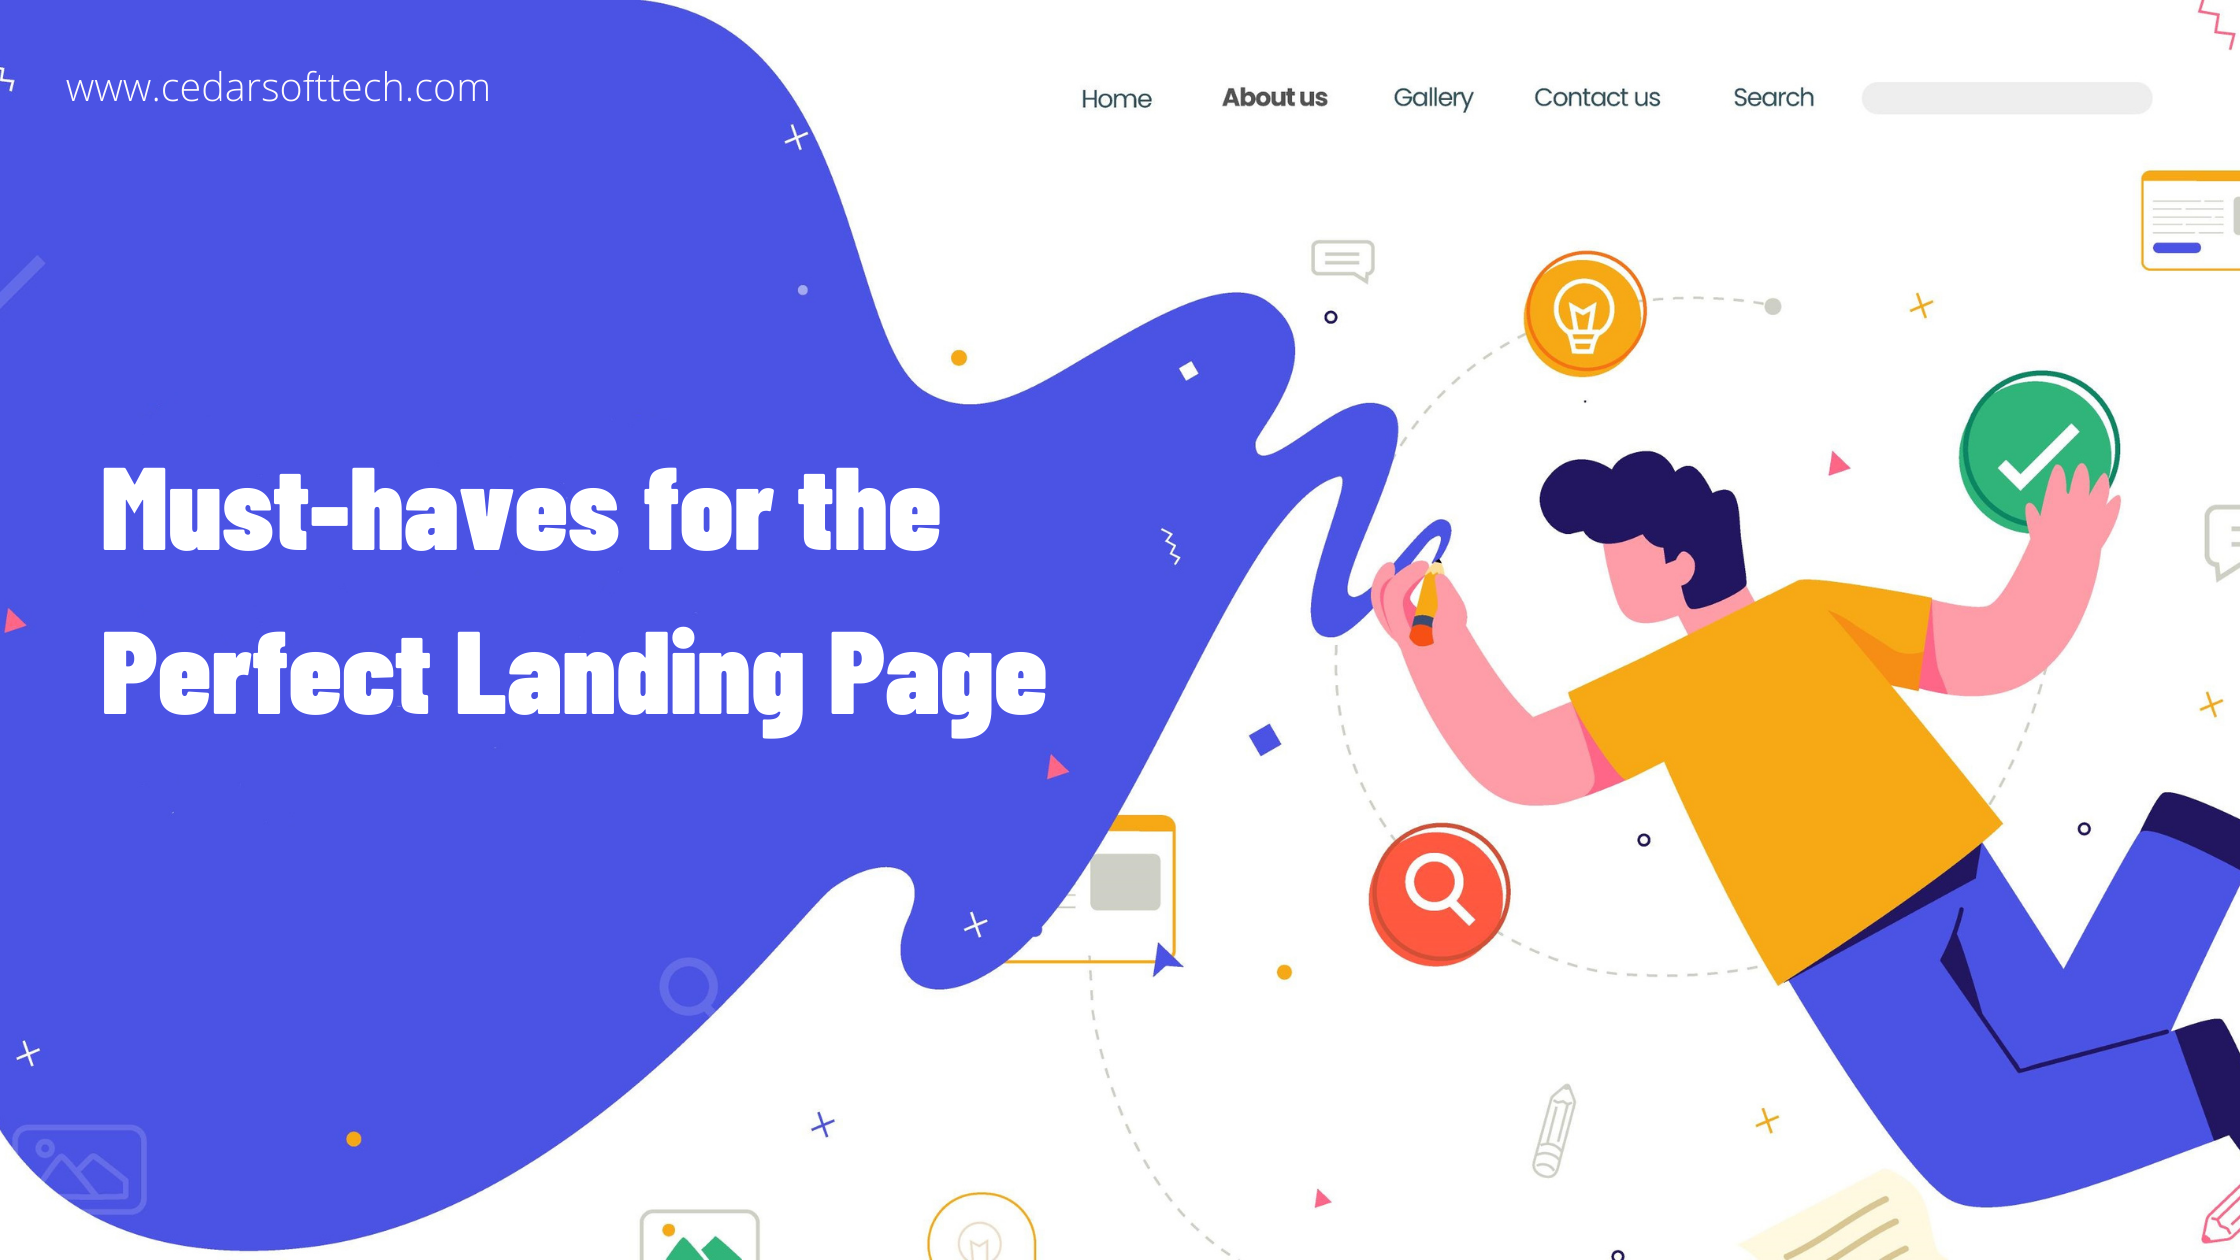 Must-haves for the Perfect Landing Page